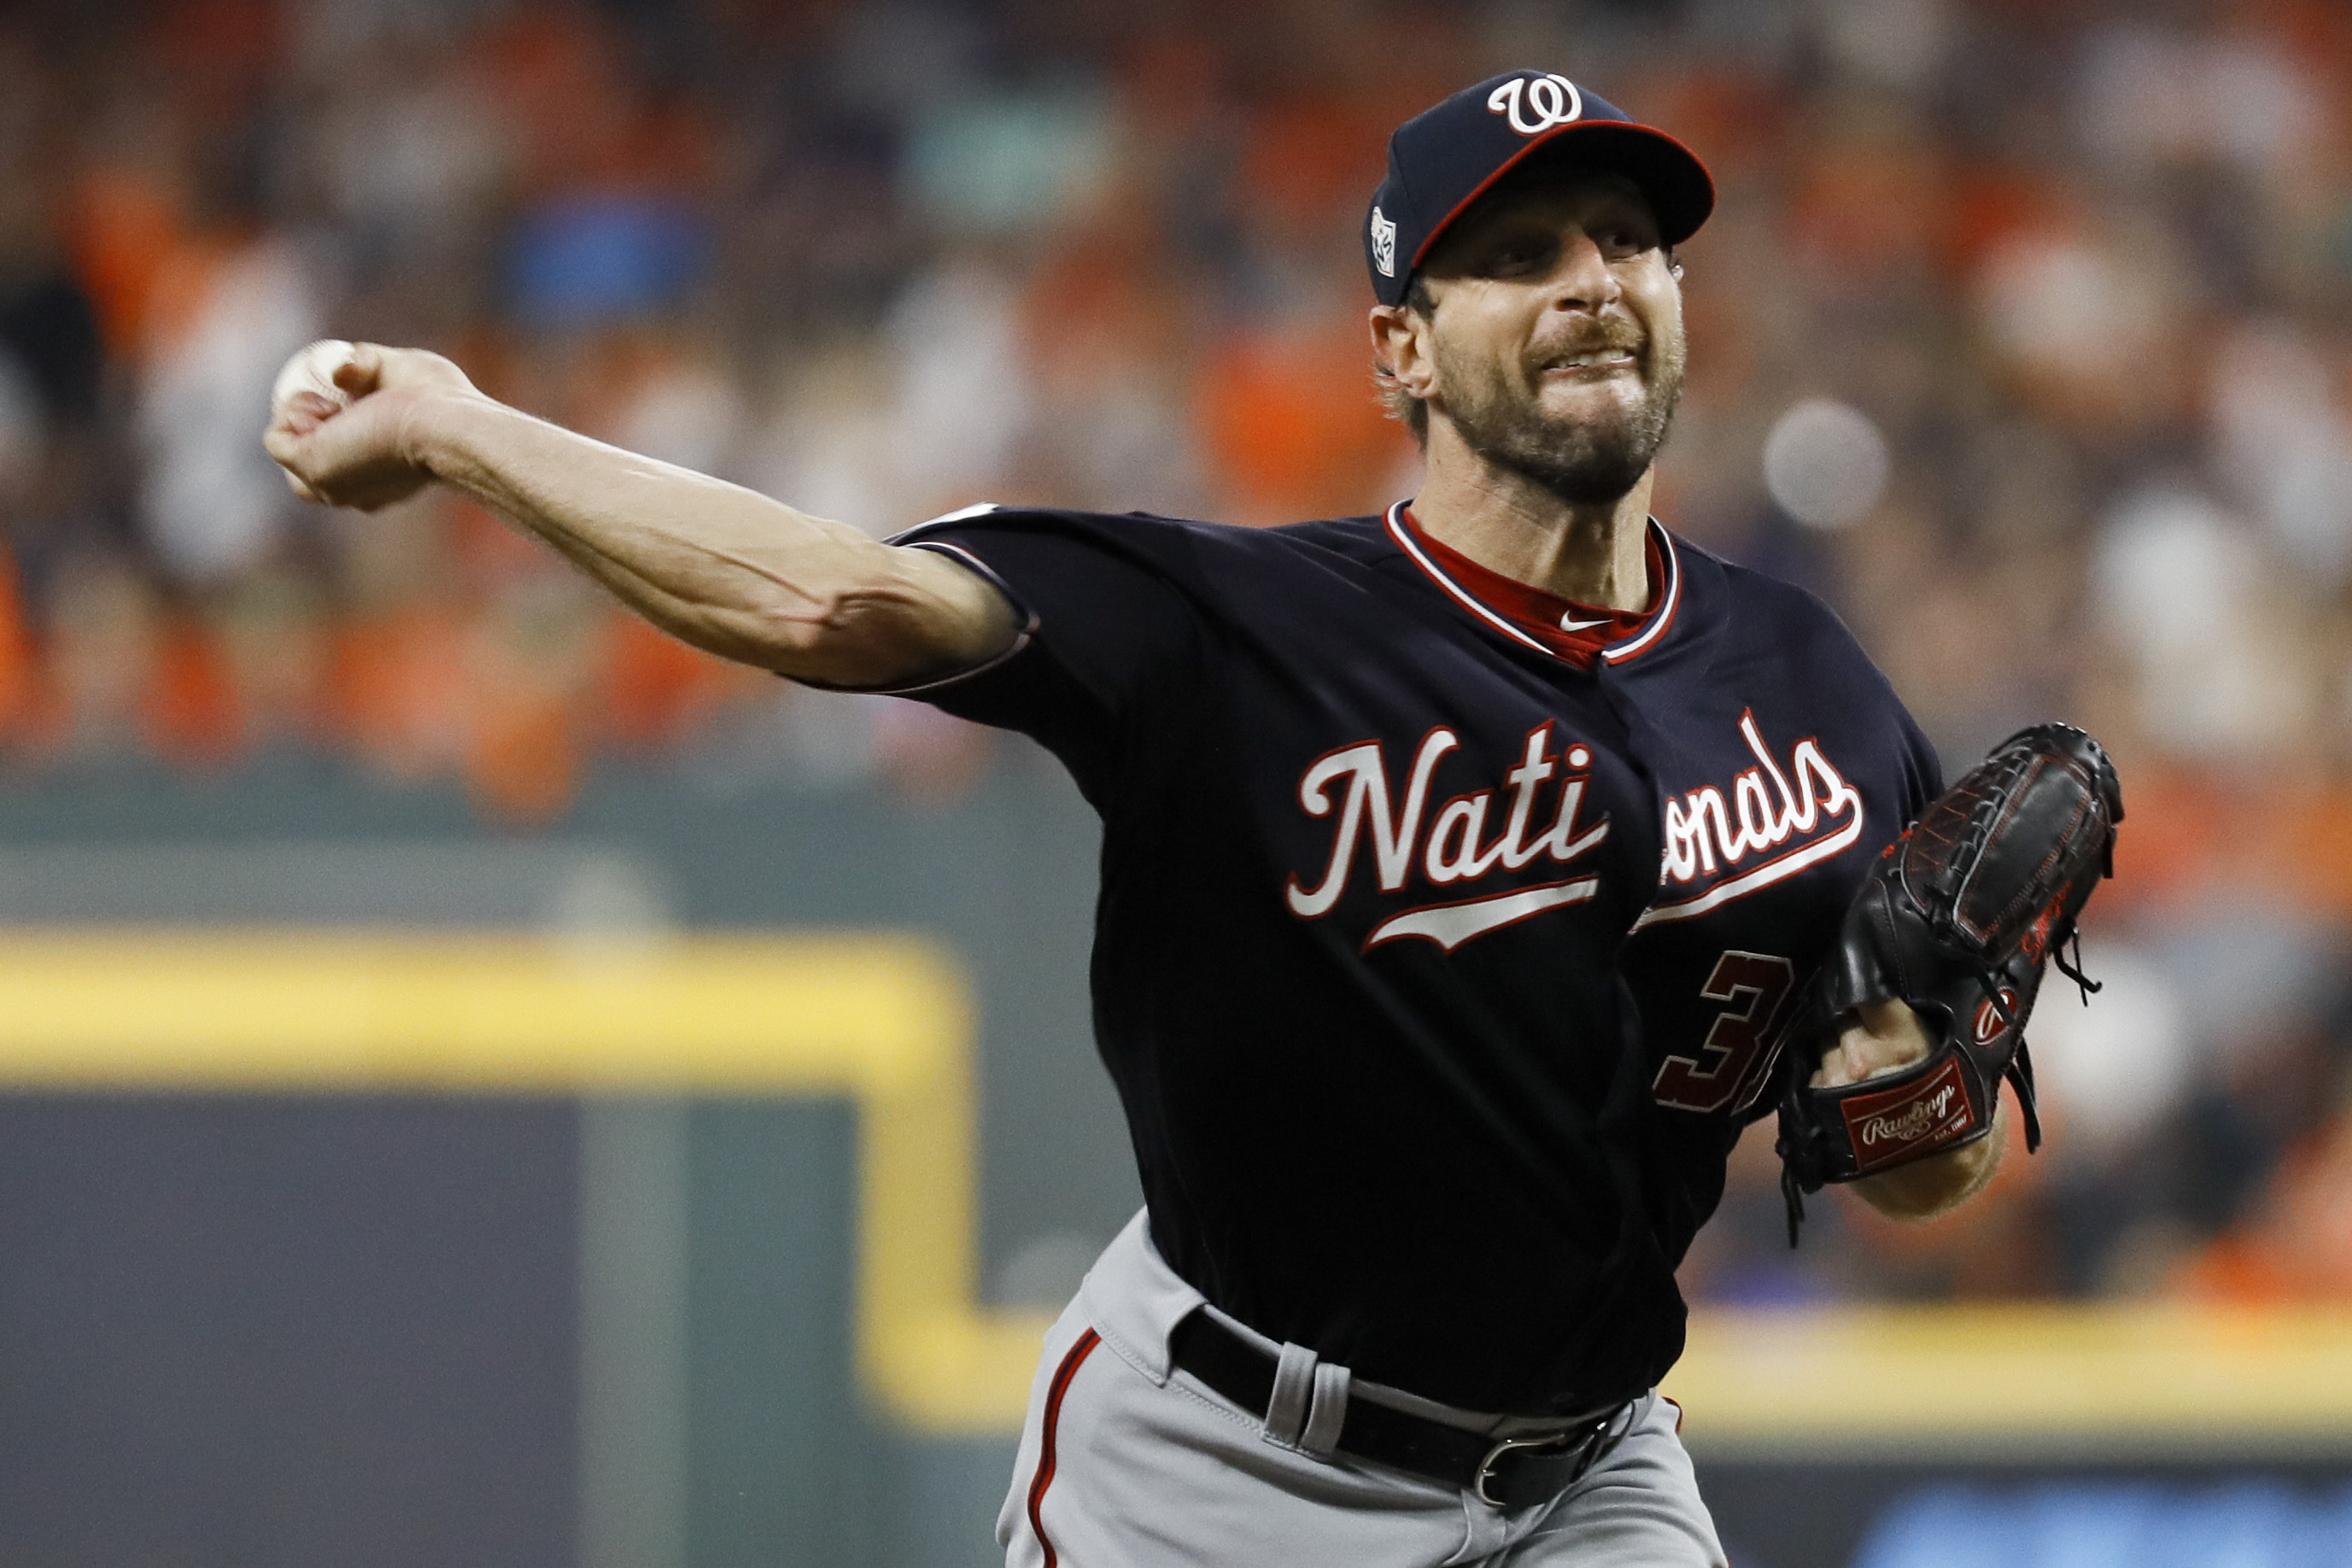 The Latest: Cole pitches Astros to 3-2 Series lead over Nats